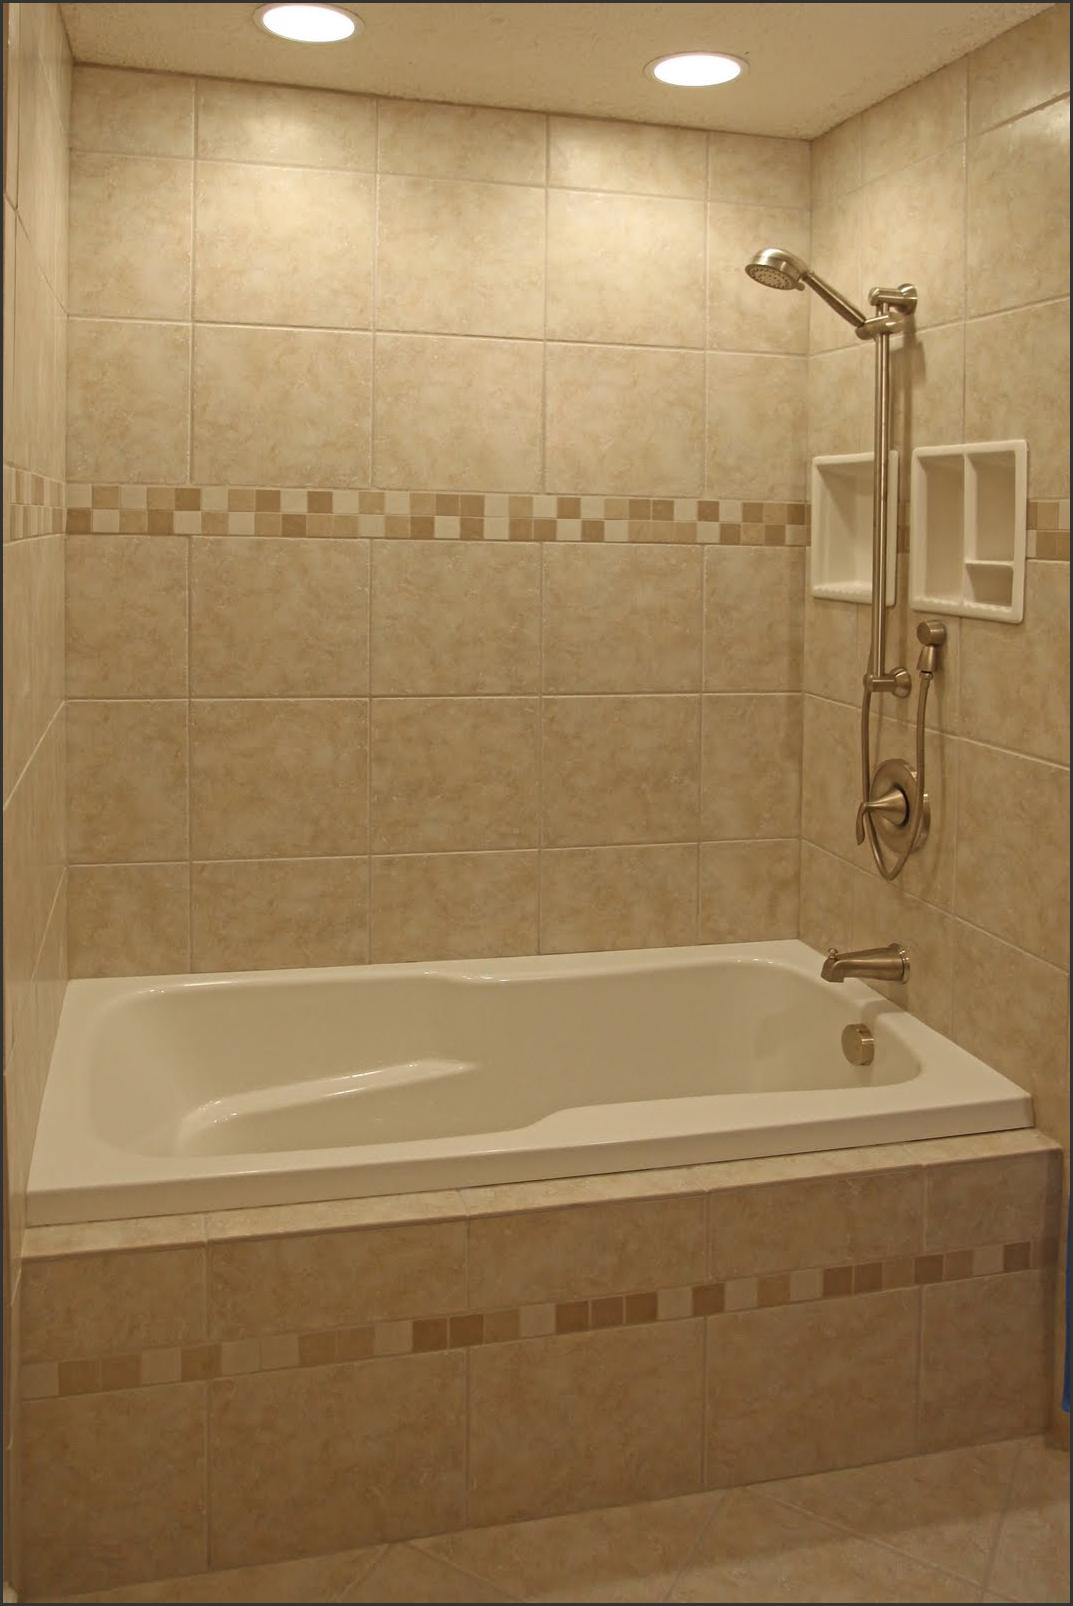 Simple Design Of The Grey Wall And White Sink Added With Bathroom Shower  Tile With Silver